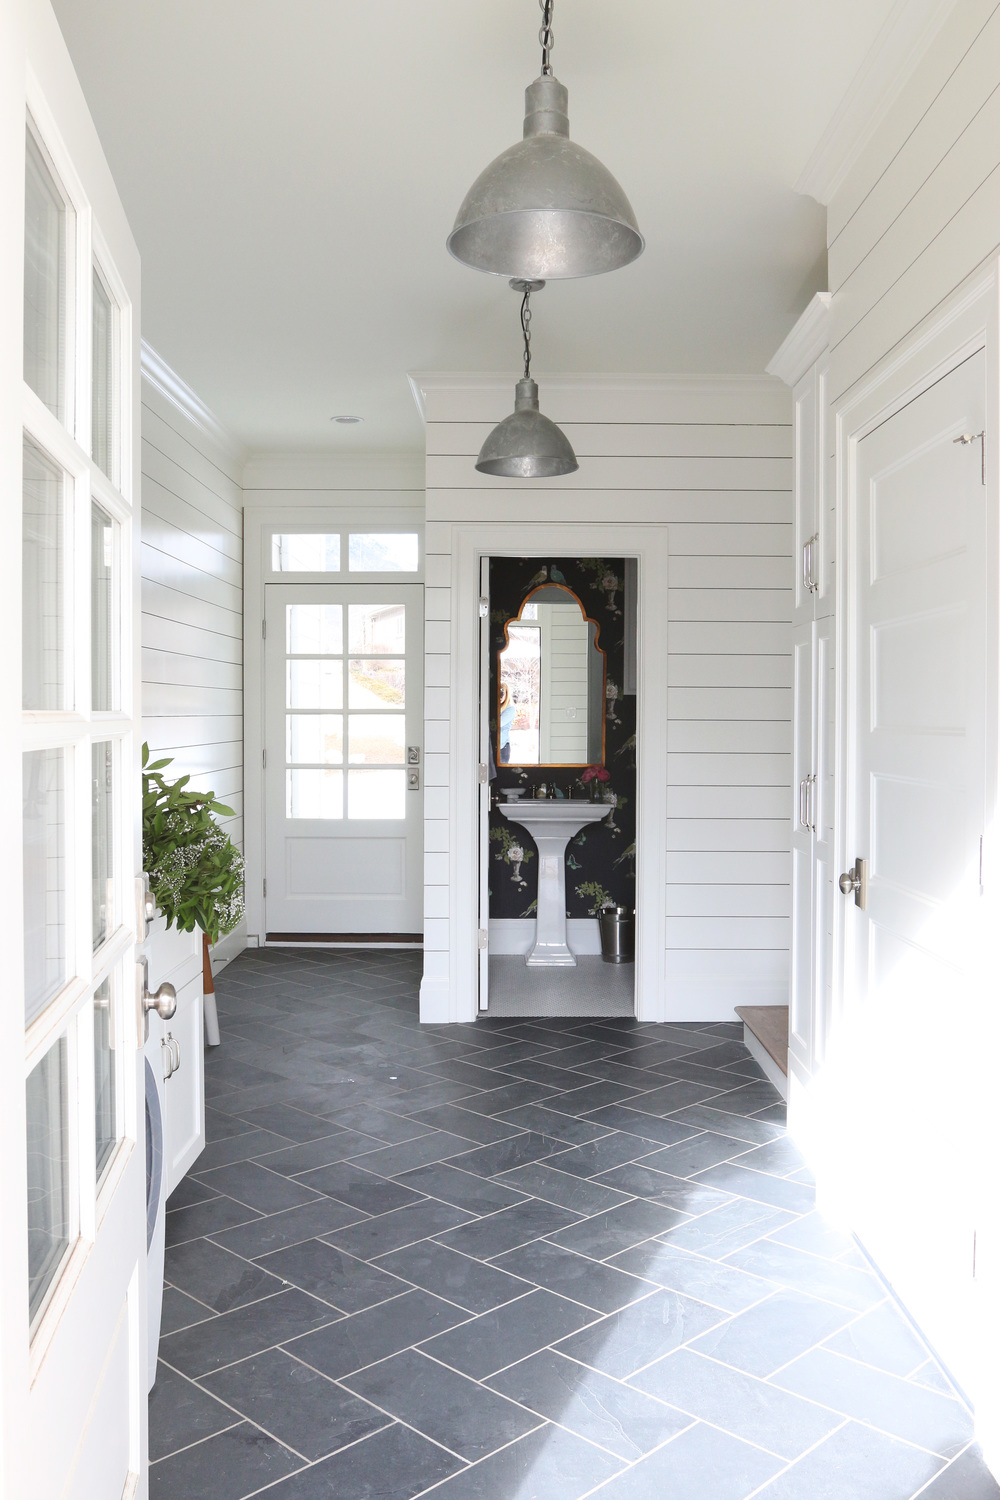 Mud Room Flooring : The midway house mudroom — studio mcgee